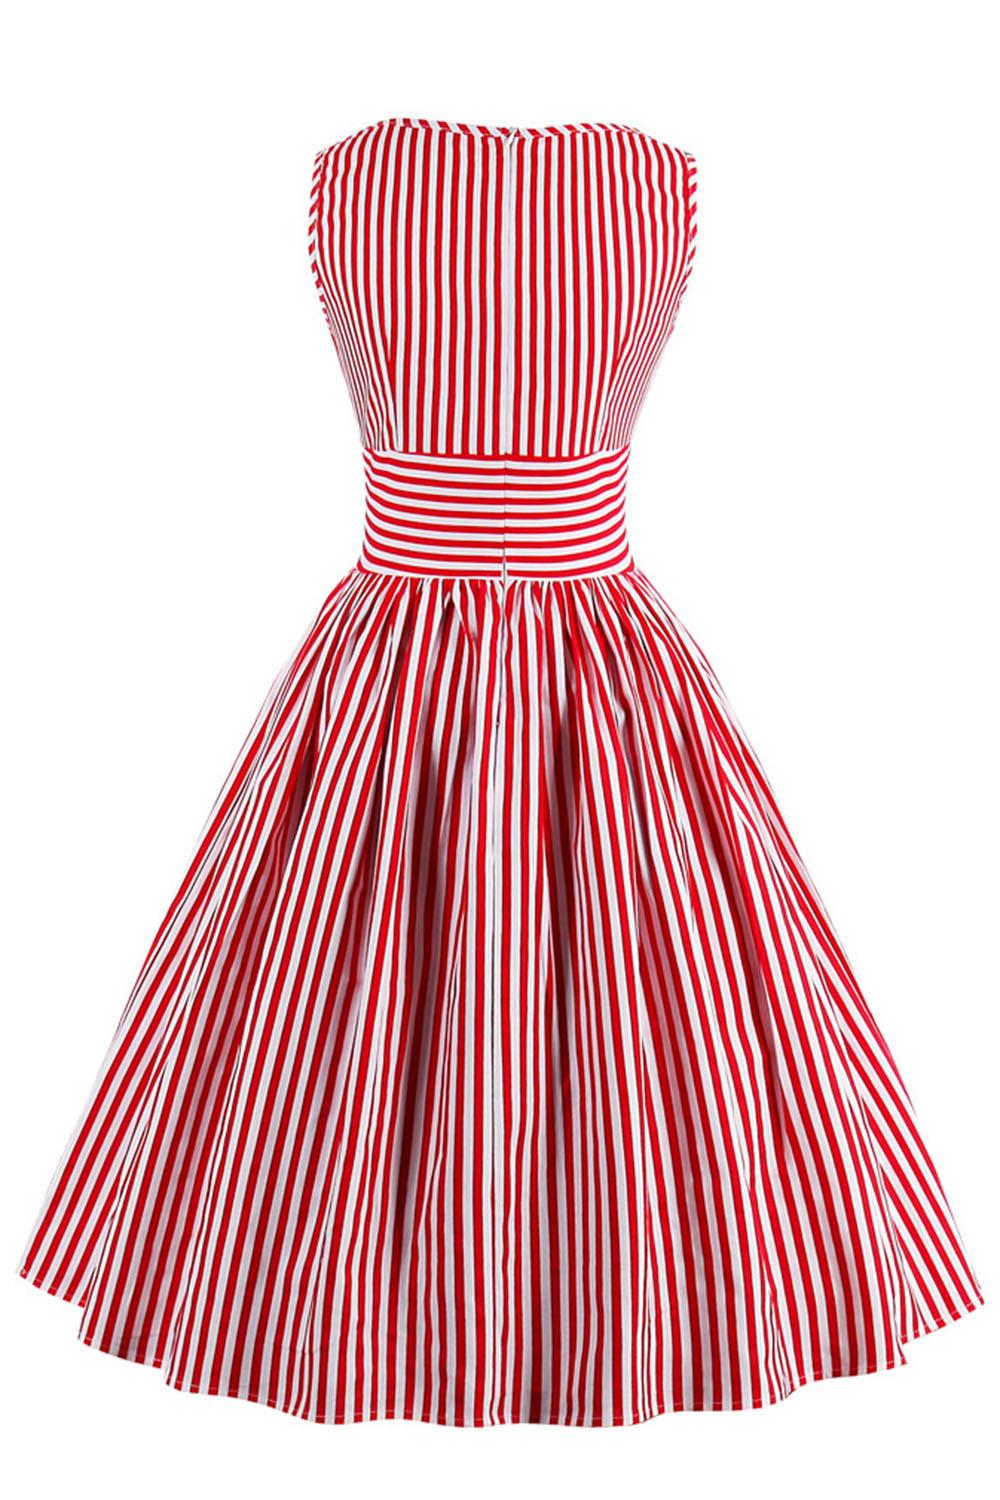 MisShow 2017 Summer Women Dress Retro Stripe Audrey Hepburn 50s 60s Vintage  Robe Rockabilly Casual Vestidos Striped-in Dresses from Women s Clothing on  ... 1a0f8487ec55